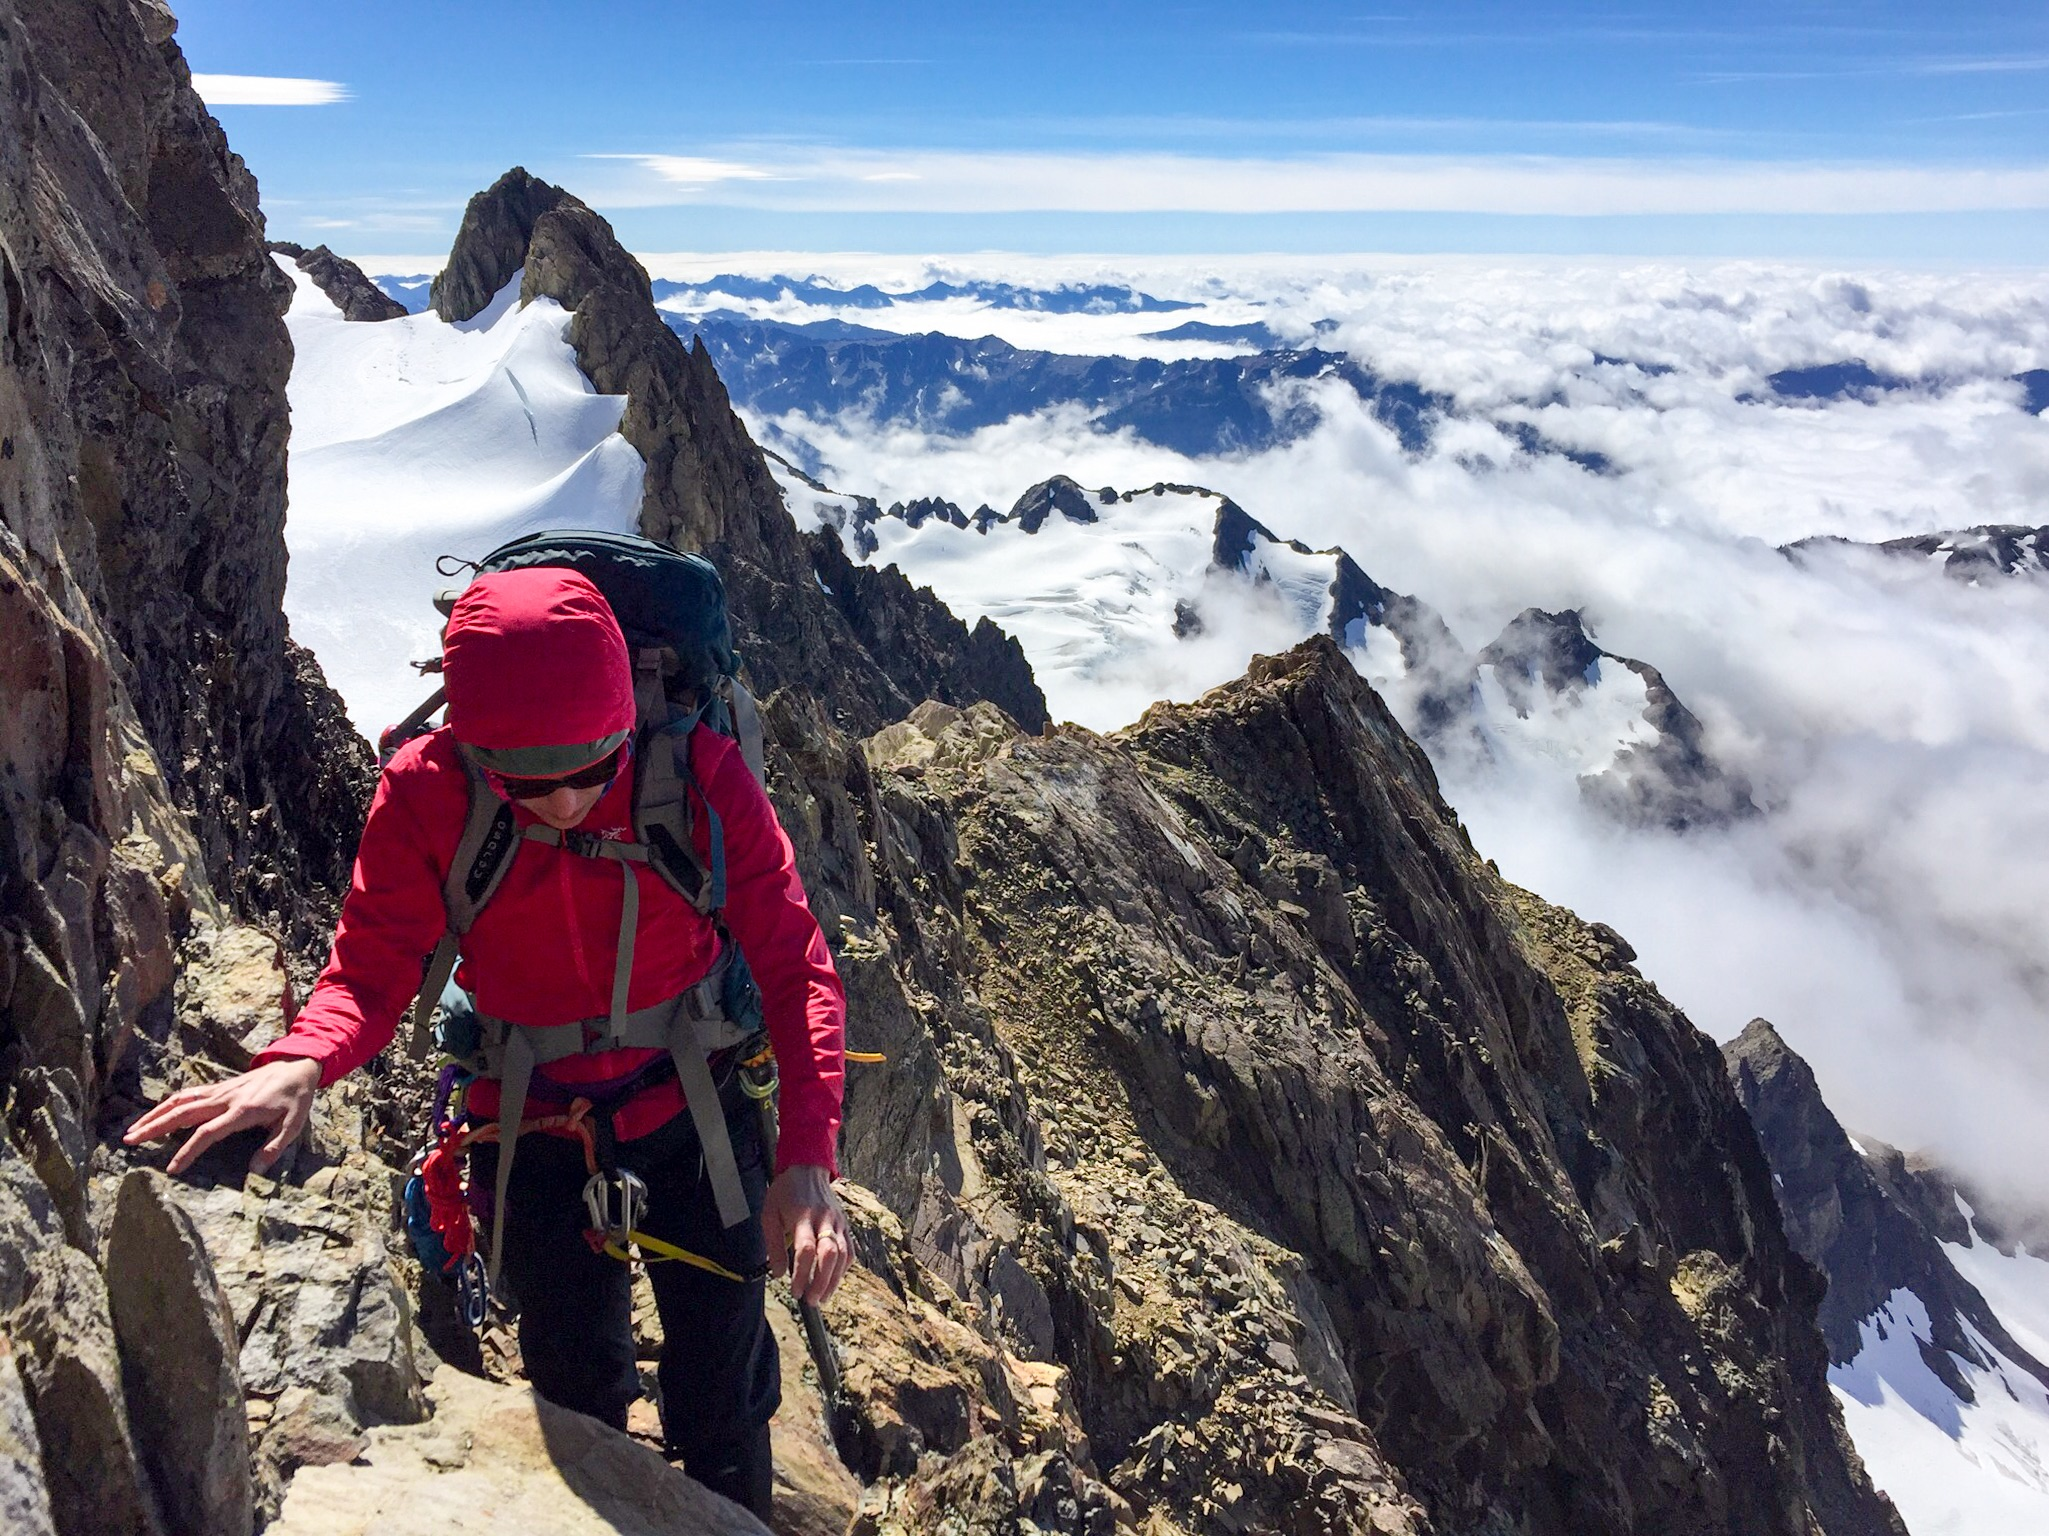 Nearing the summit of Mount Olympius. Feeling fine, thanks for asking. Photo:  Daniel Fineman